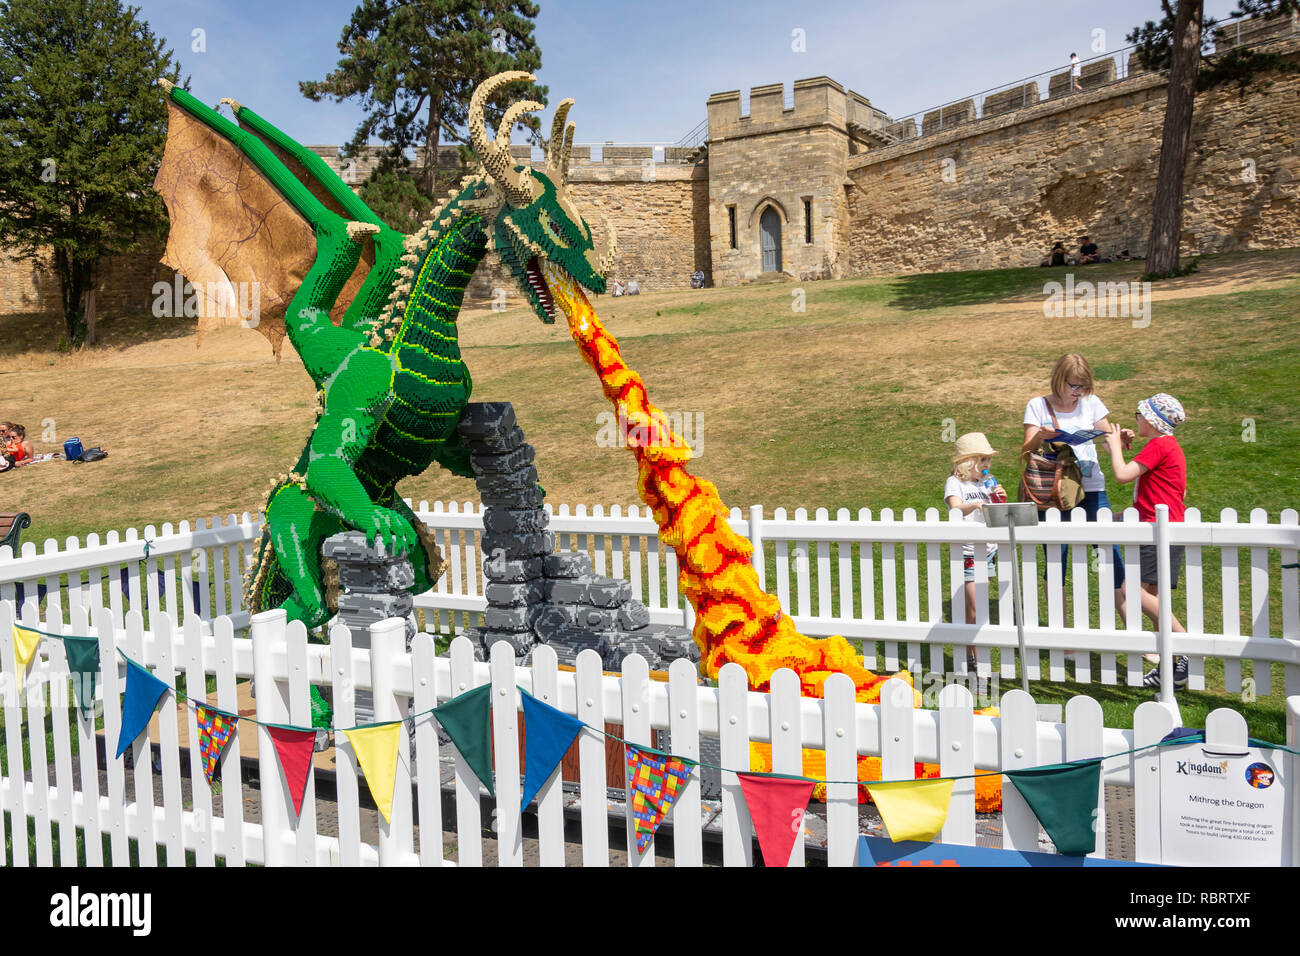 Kingdom Lego Dragon Exhibit In Grounds Of Lincoln Castle Lincoln